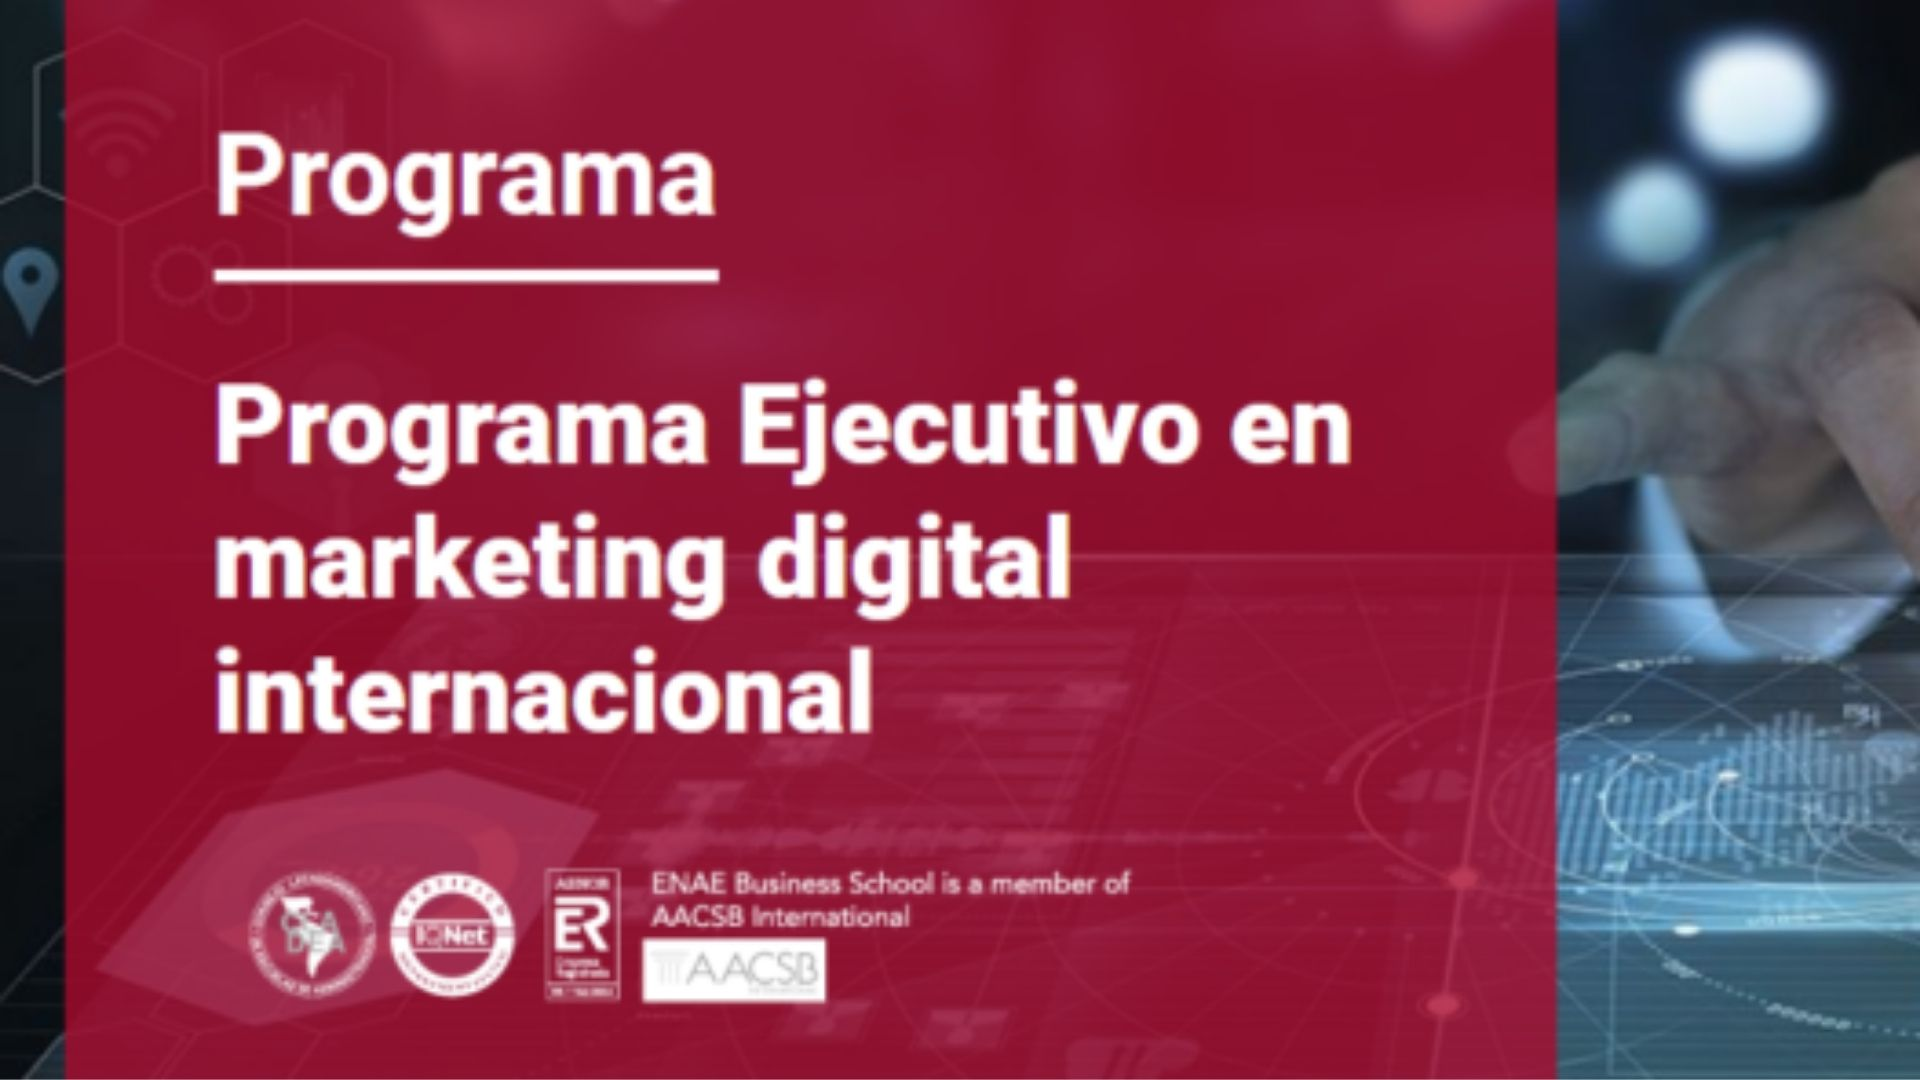 ENAE MARKETING DIGITAL INTERNACIONAL